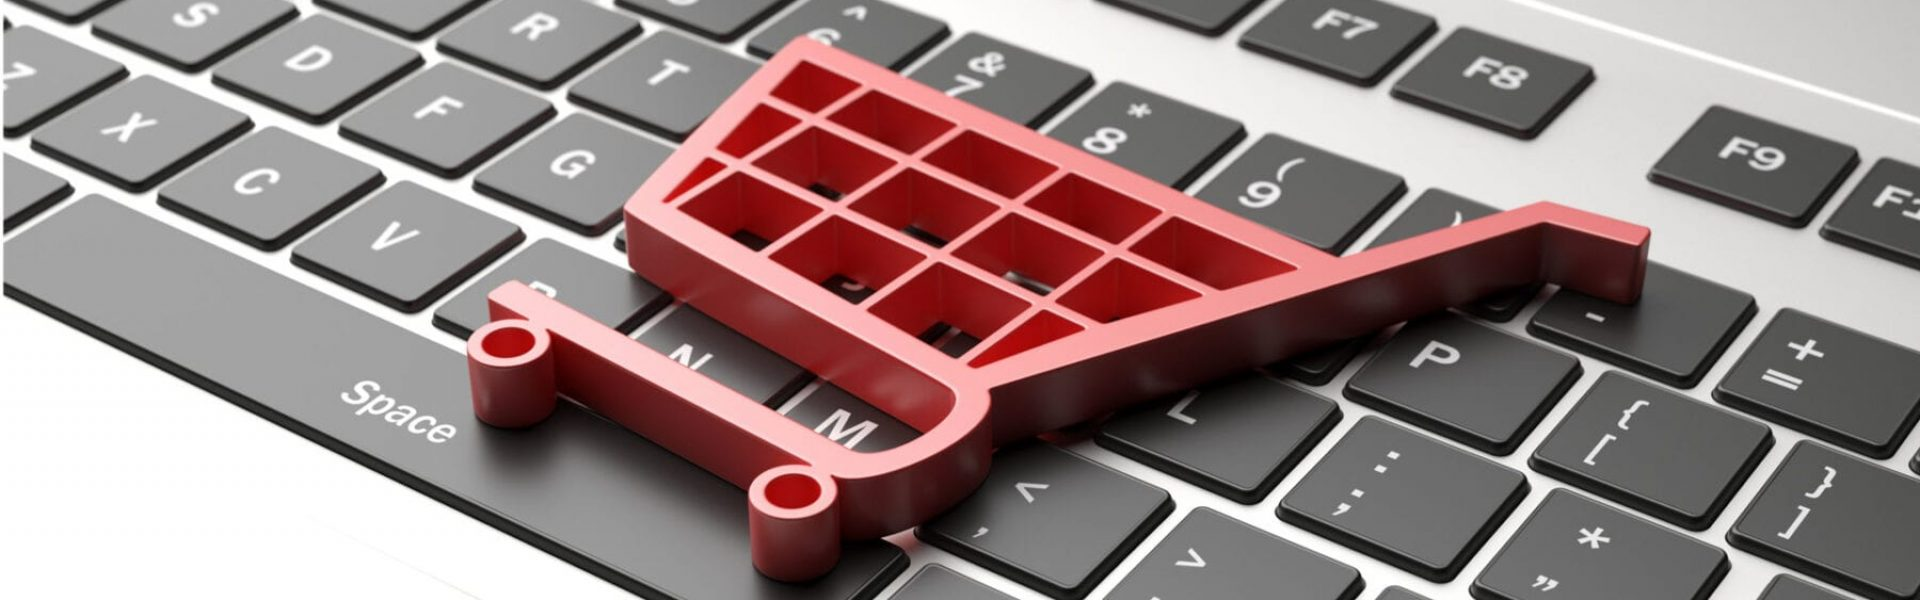 18% eCommerce Growth Expected in 2020, Despite the Pandemic